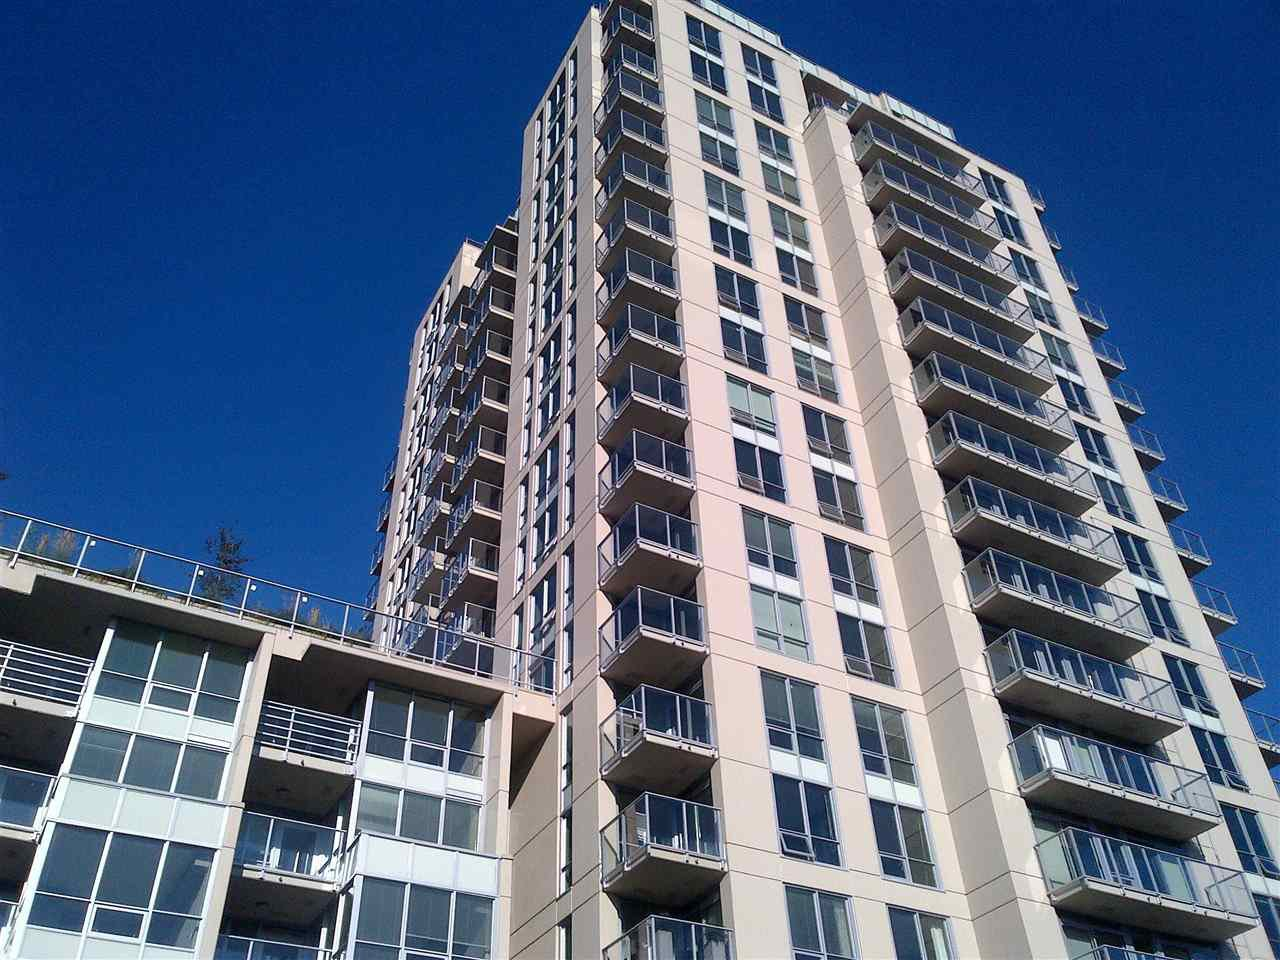 Main Photo: 309 135 E 17TH STREET in North Vancouver: Central Lonsdale Condo for sale : MLS®# R2017530